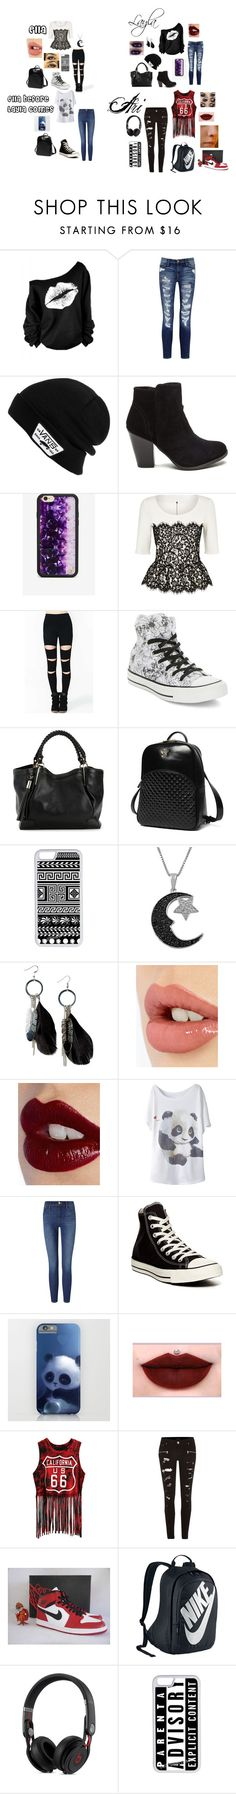 """""""Ella's First Day of School"""" by caberry on Polyvore featuring Current/Elliott, Vans, Wildflower, St. John, Converse, Princess Carousel, CellPowerCases, Jewel Exclusive, MANGO and Charlotte Tilbury"""